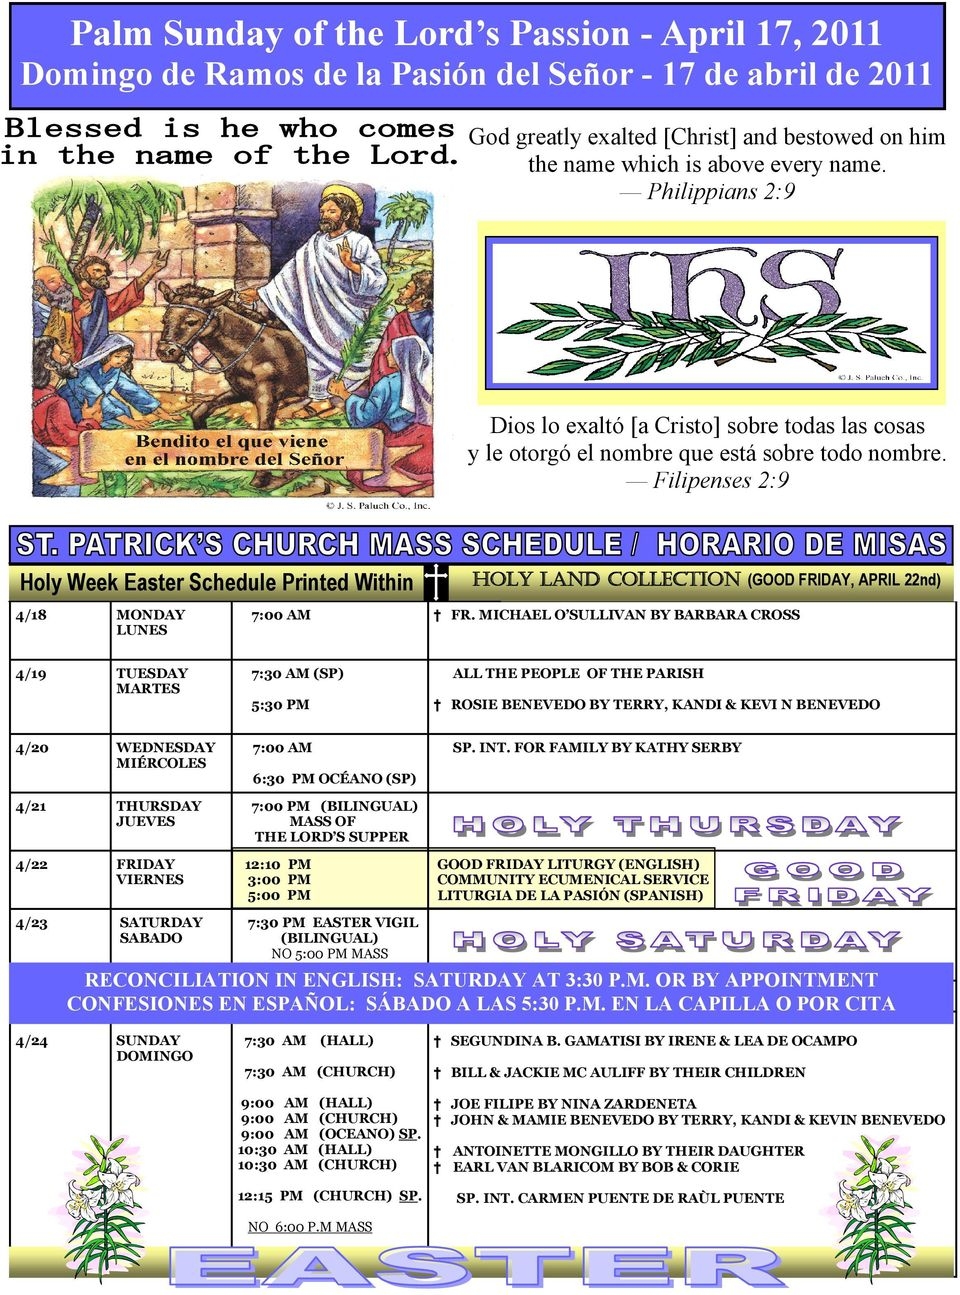 Filipenses 2:9 Holy Week Easter Schedule Printed Within 4/18 MONDAY LUNES 7:00 4/19 TUESDAY MARTES 7:30 (SP) FR.